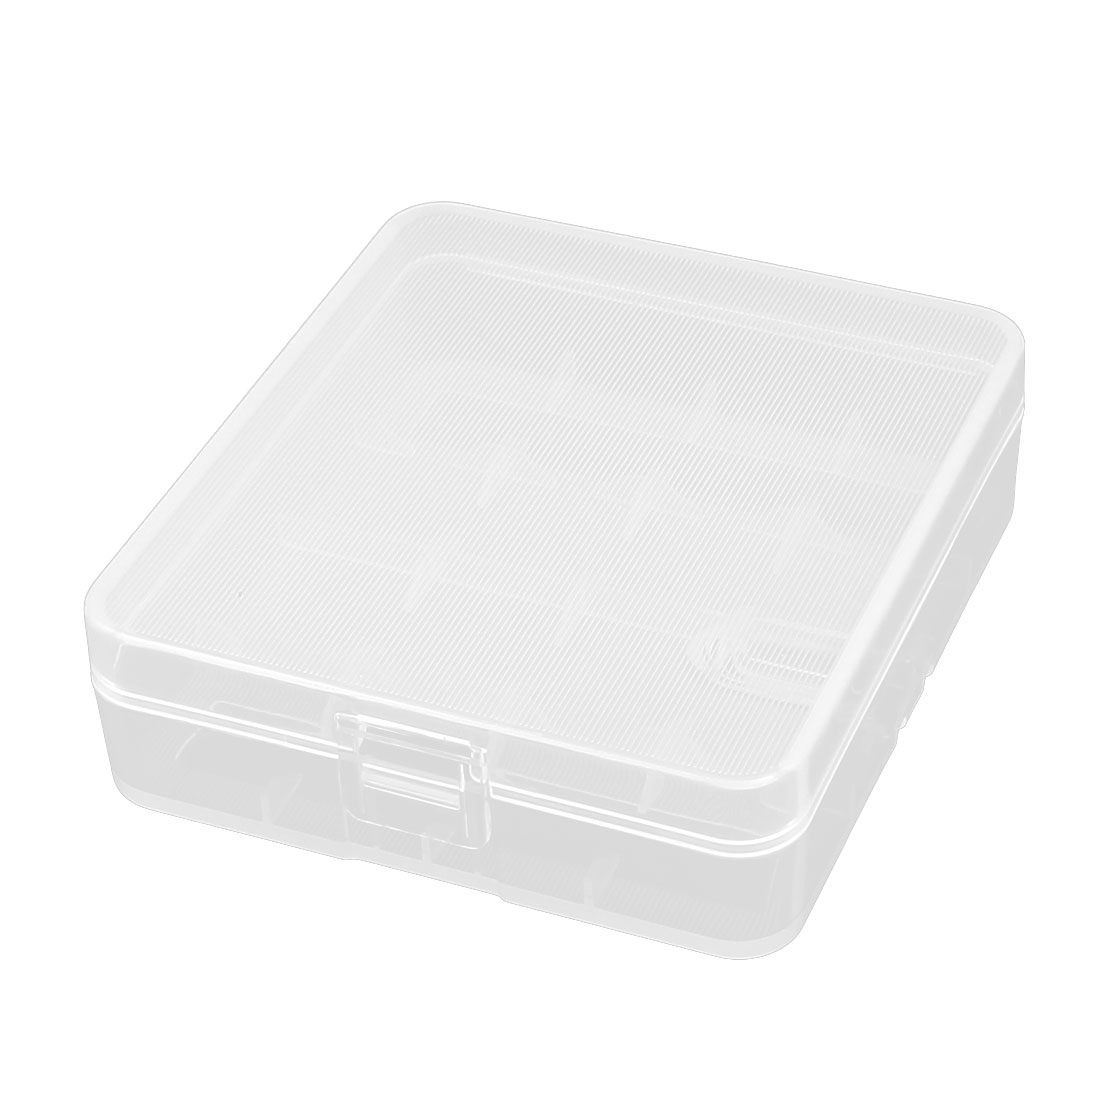 Clear White Plastic Storage Battery Box Case for 4 x 18650 Batteries